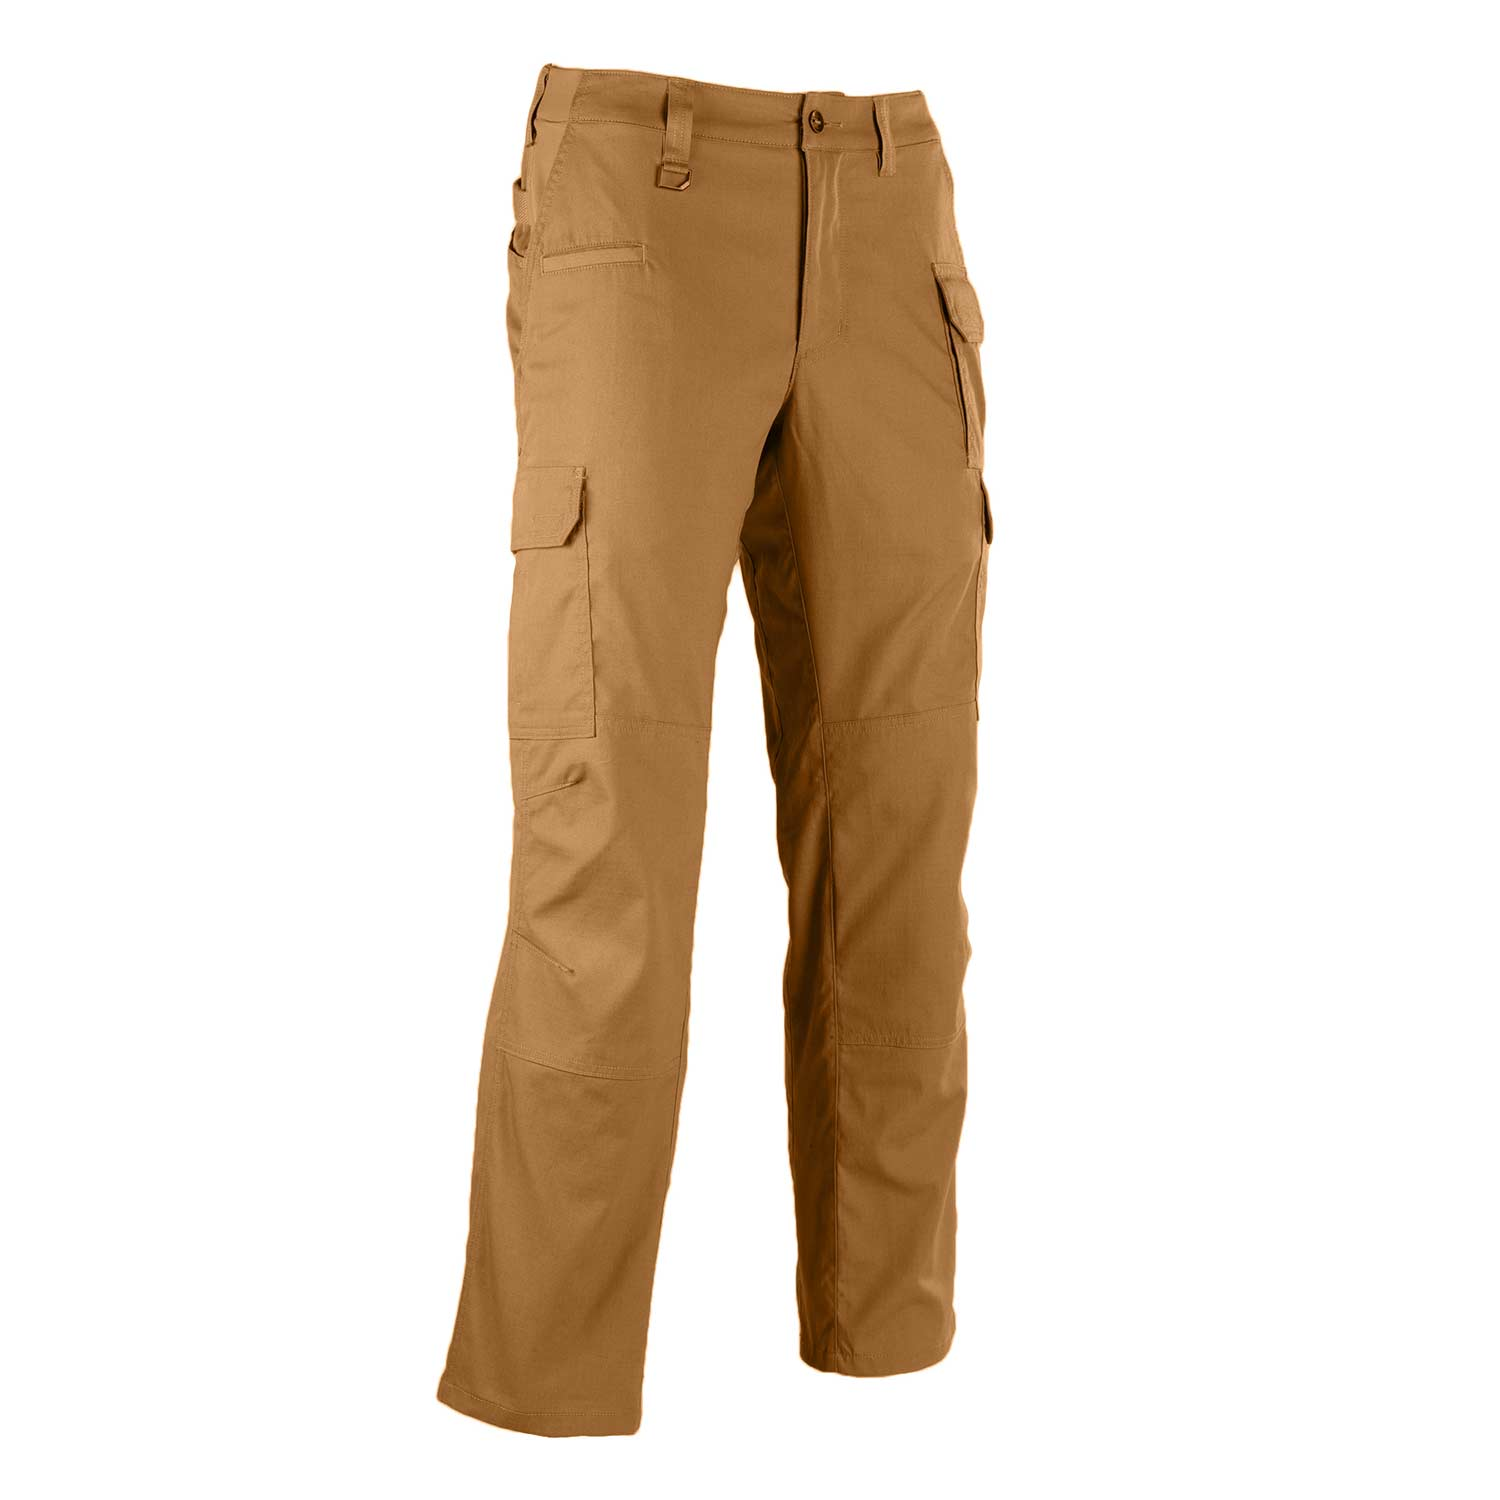 5.11 Tactical ABR Pro Pants